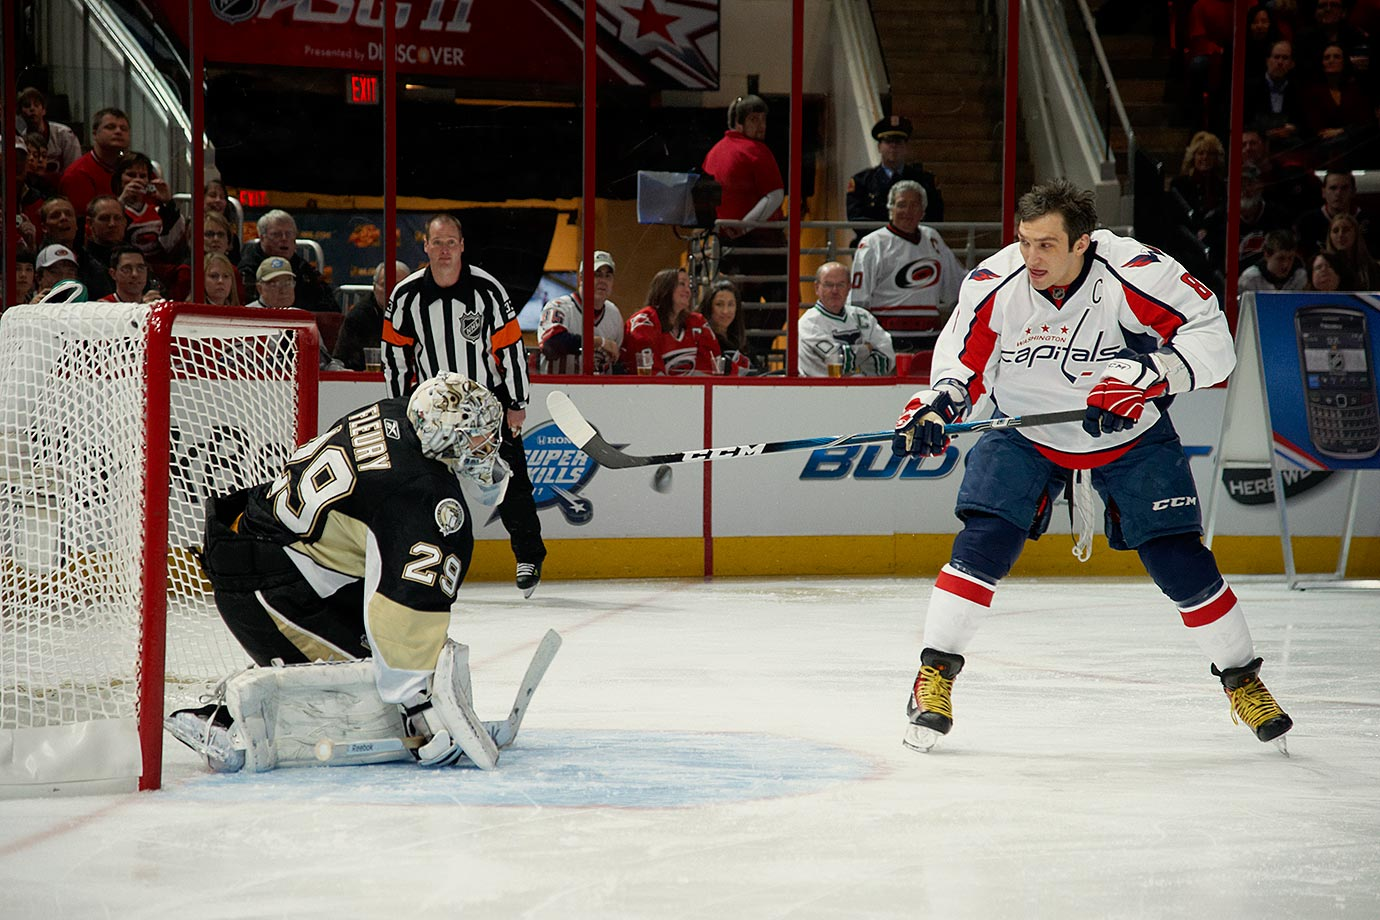 January 29, 2011 — NHL All-Star SuperSkills Competition